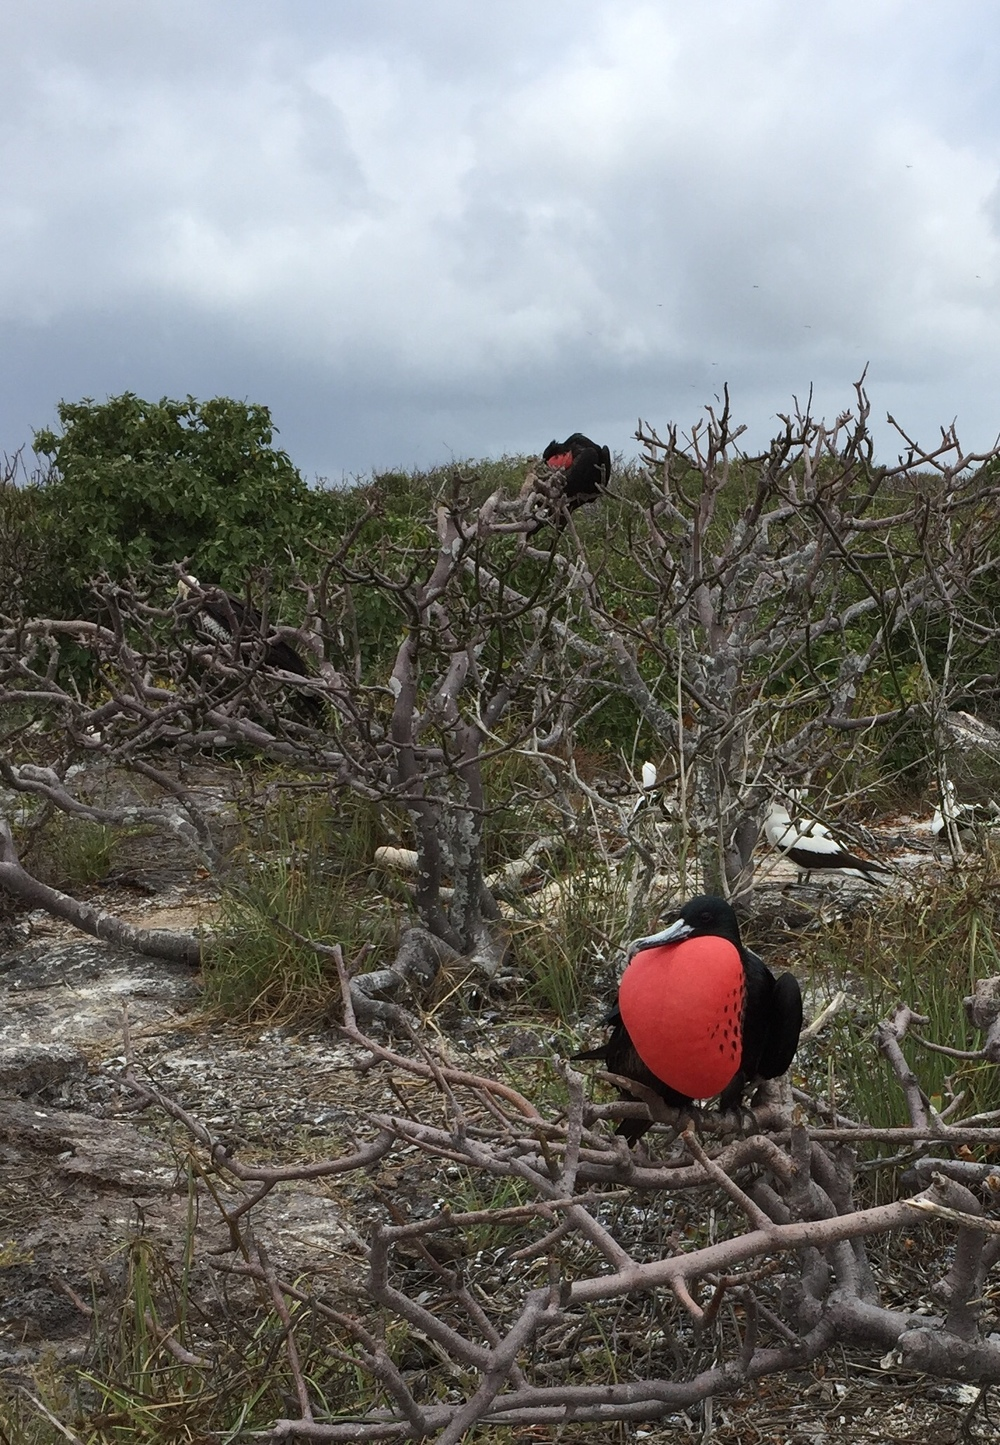 A male frigate bird in all of his red throated glory, as he hopes to attract a mate on Isla Genovesa.